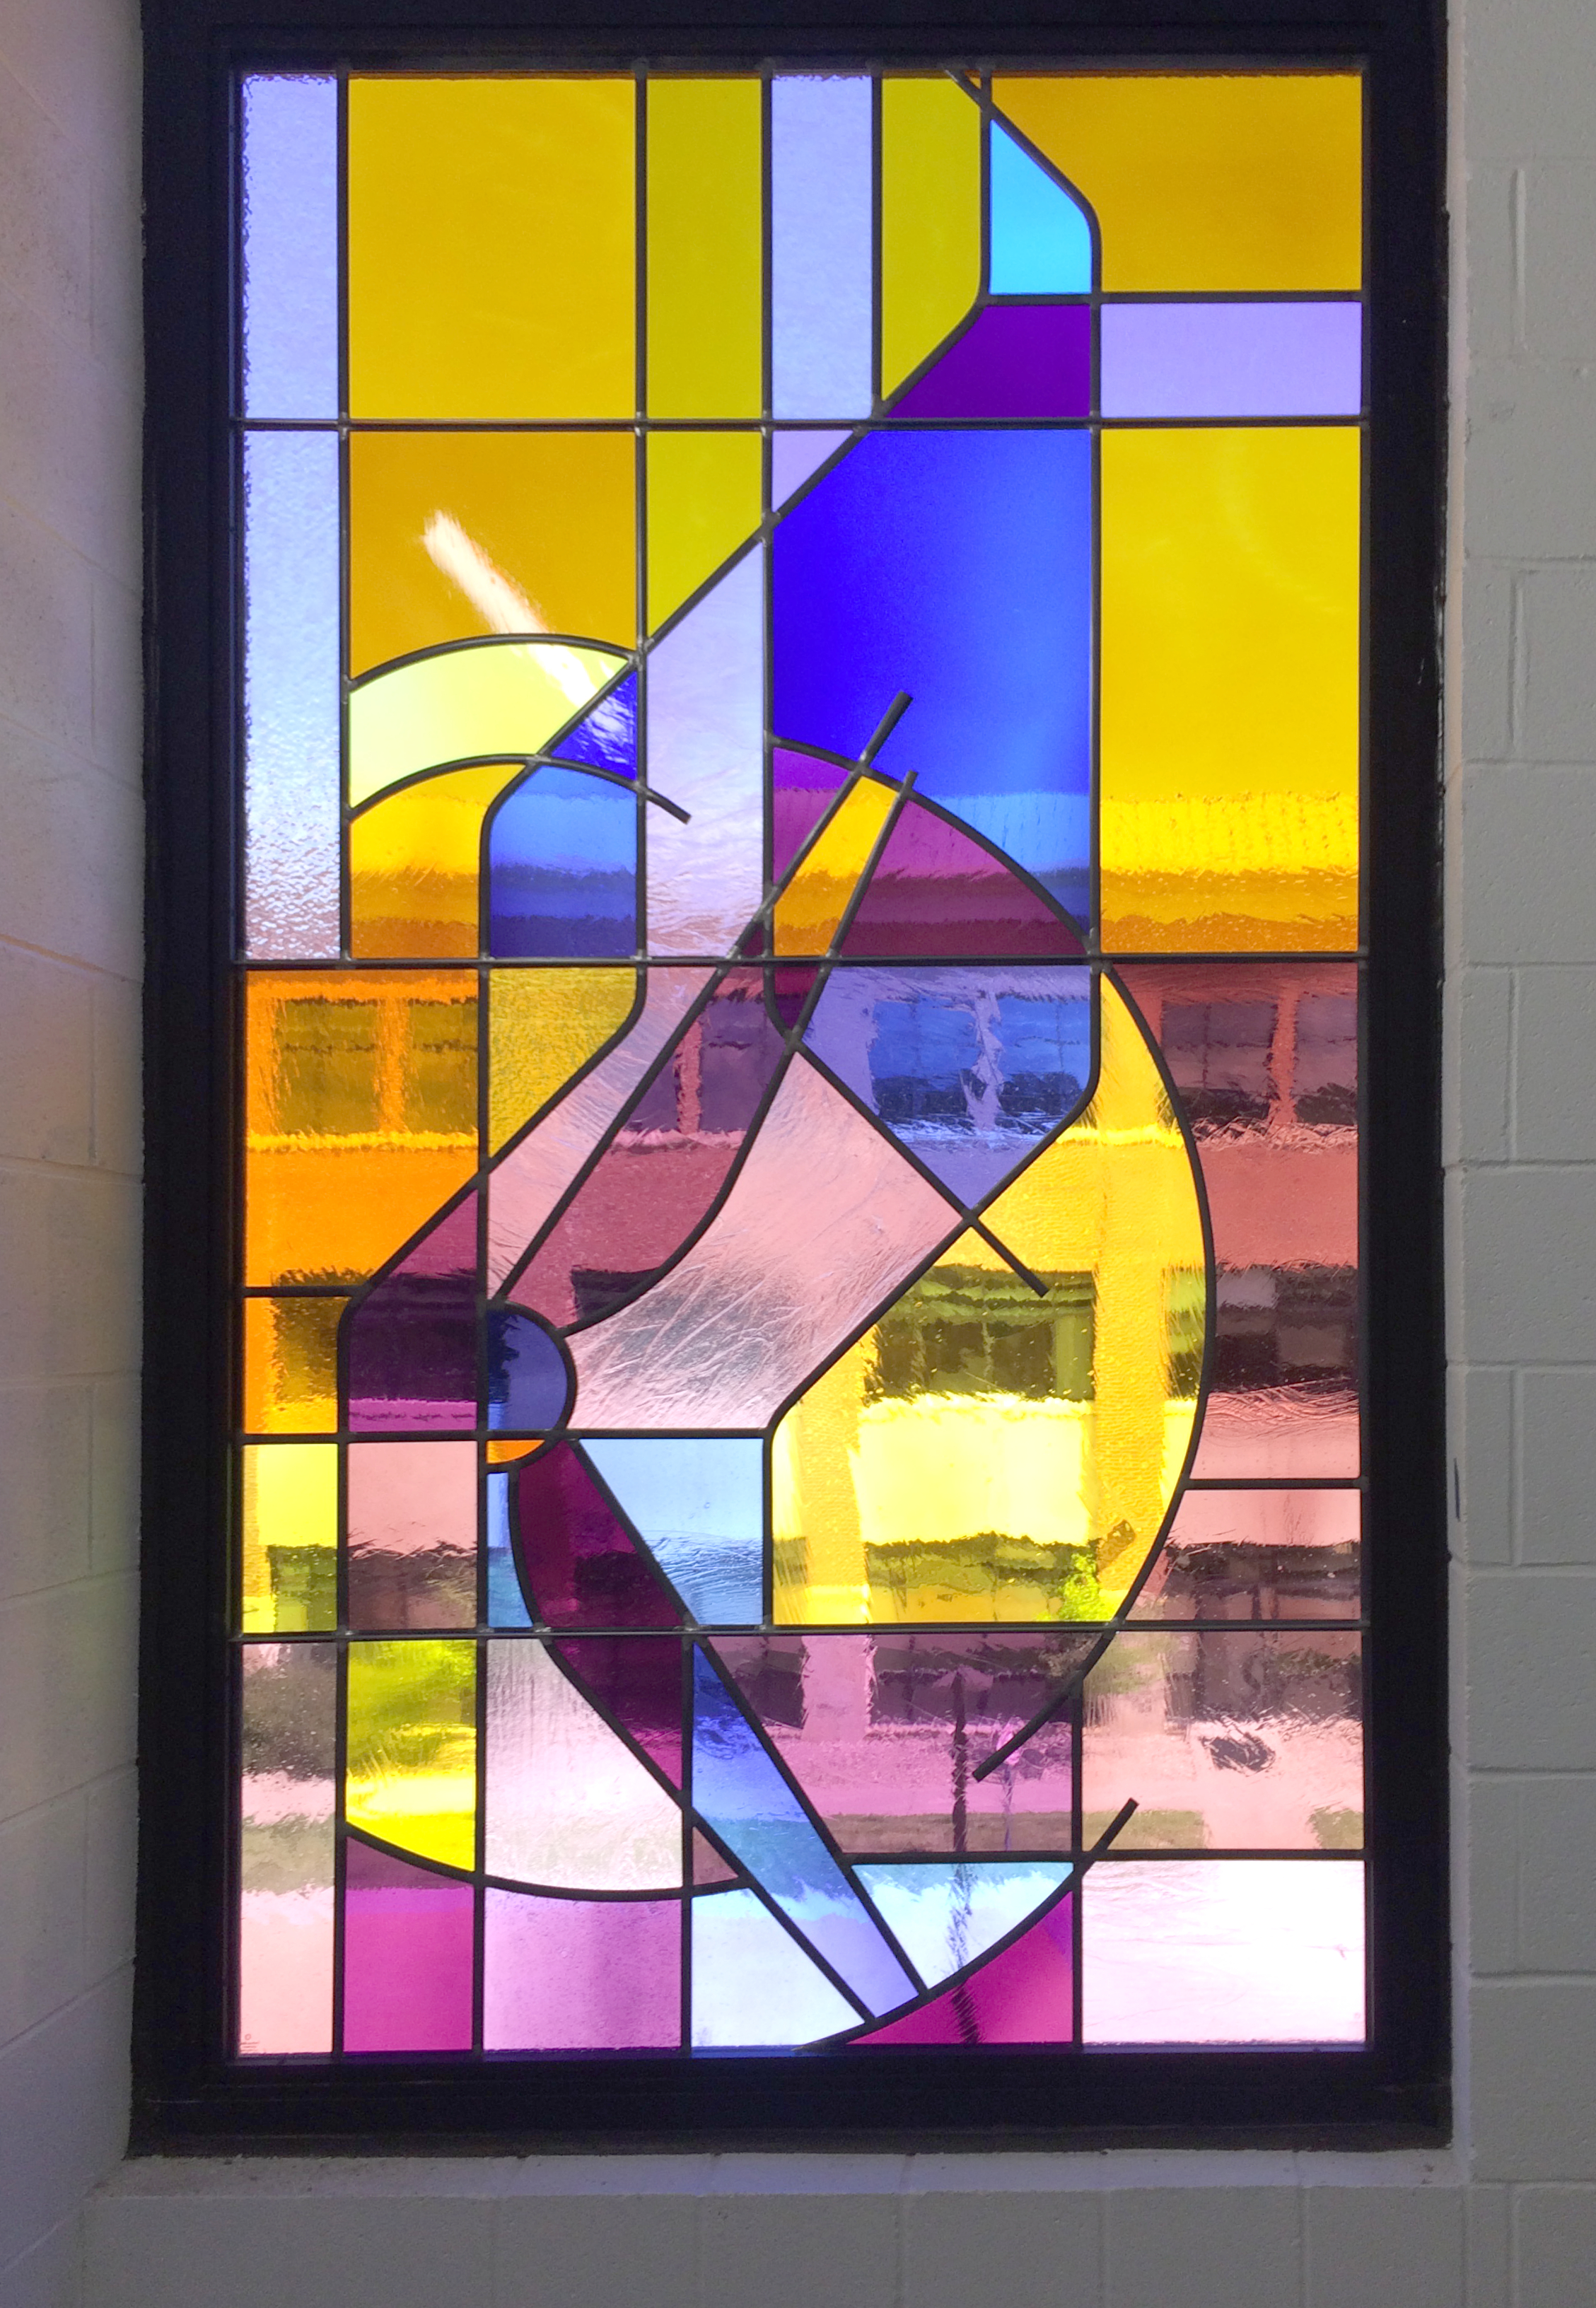 Stained glass in the stairwells by Creative Stained Glass Studio.